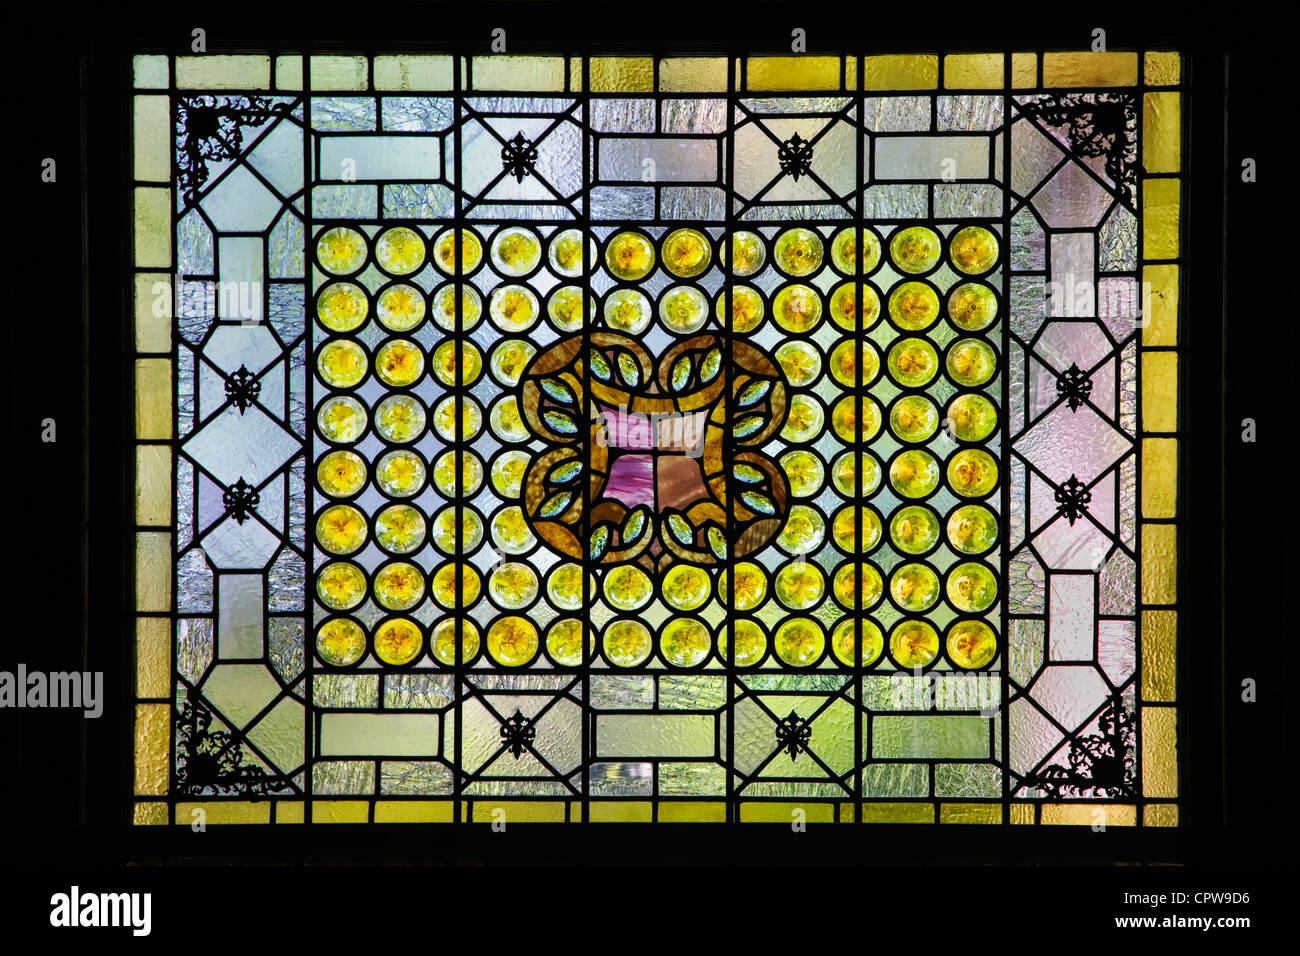 A classic Louis Comfort Tiffany stained glass window in St Augustine's Flagler college, Florida Stock Photo